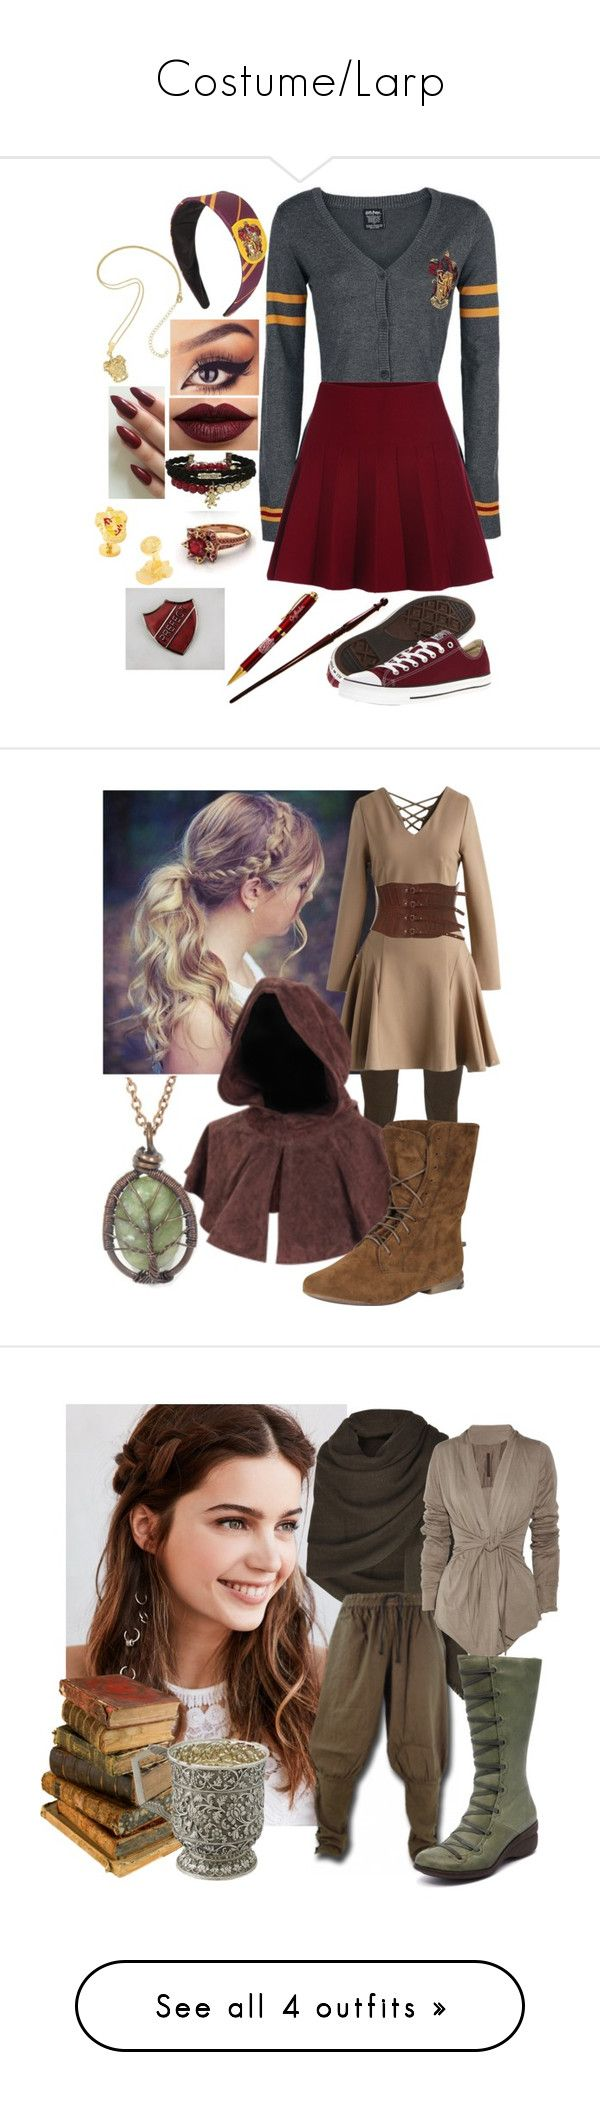 """""""Costume/Larp"""" by amy-yvar-fawn ❤ liked on Polyvore featuring LASplash, Converse, Cufflinks, Inc., Polo Ralph Lauren, Chicwish, Breckelle's, REGALROSE, Bamford, Braun and Rick Owens Lilies"""